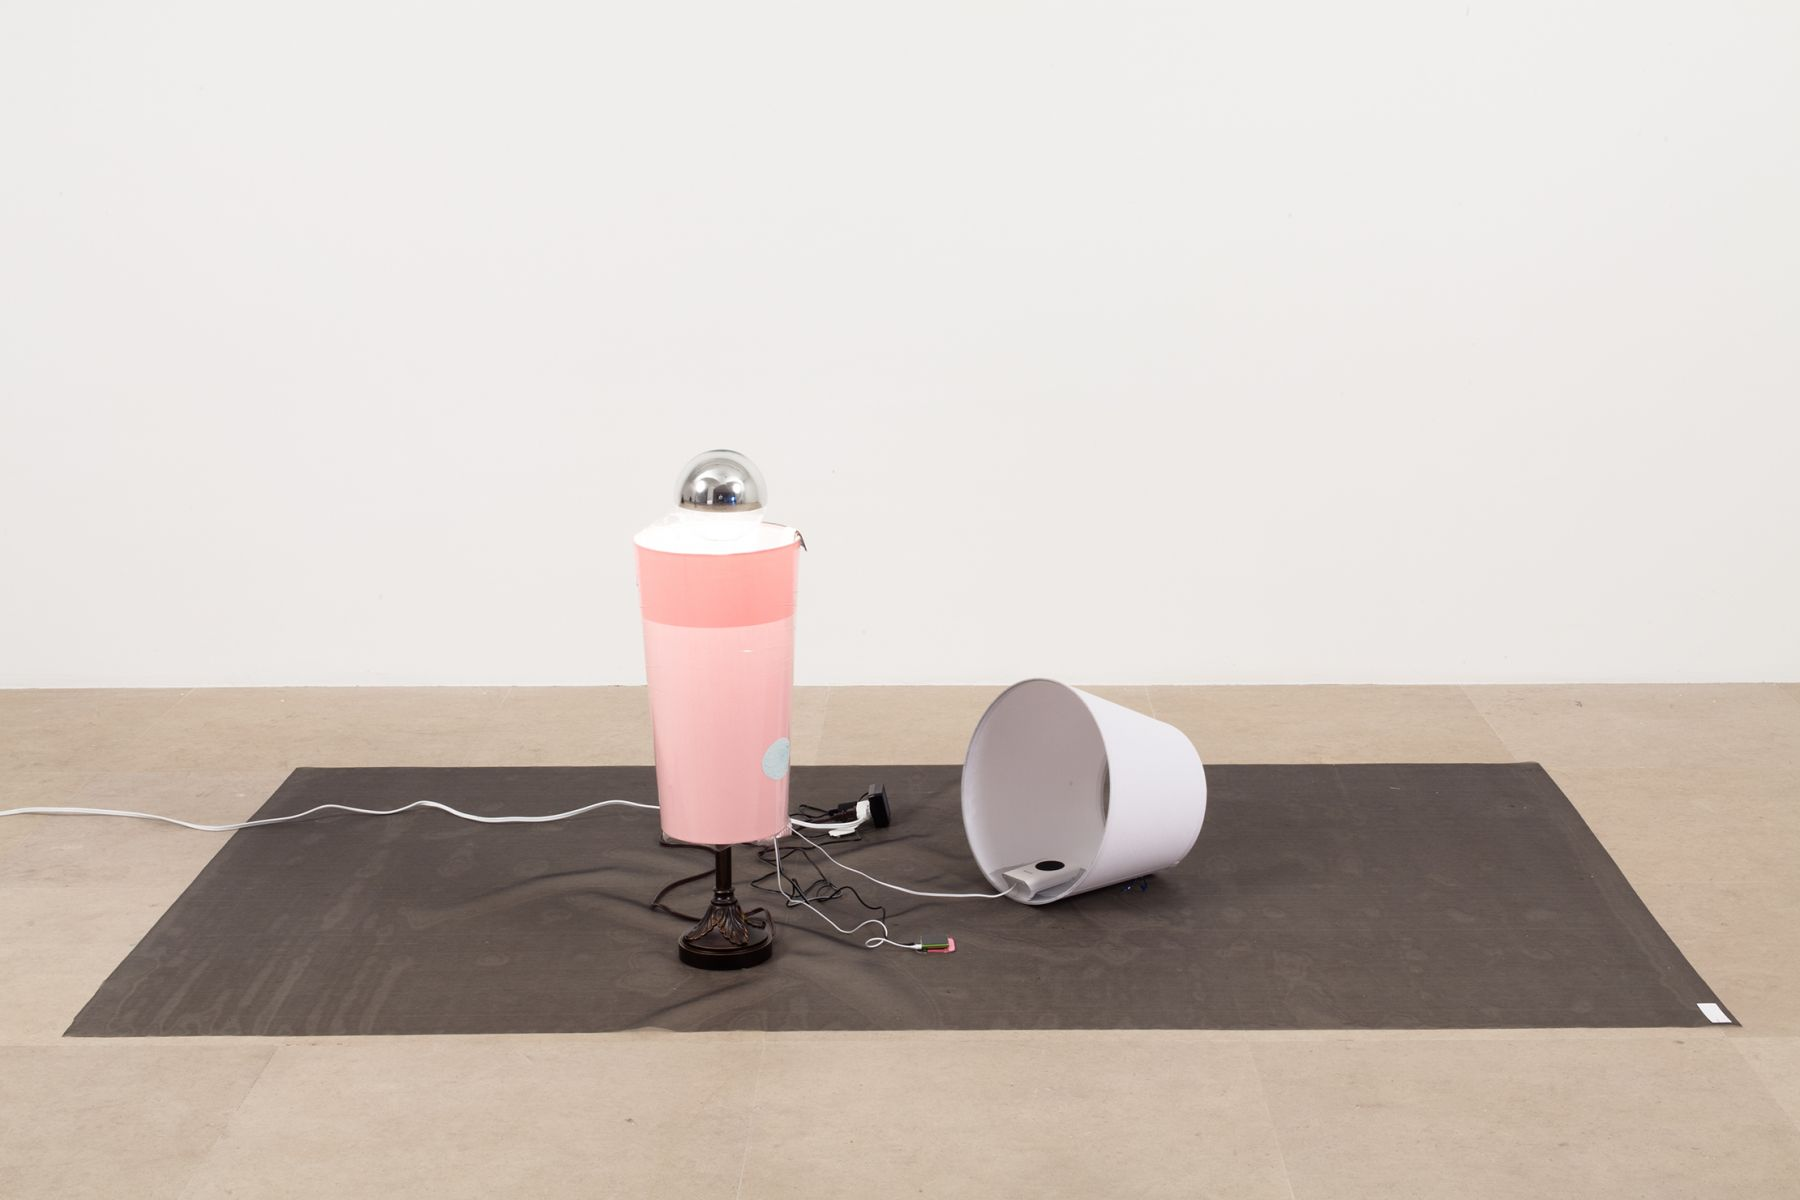 Josef Strau, Exercises, 2012, Poster, 2 lamps, sound on iPod, 2 speakers, dvd with 19 slides, and wire mesh, dimensions variable